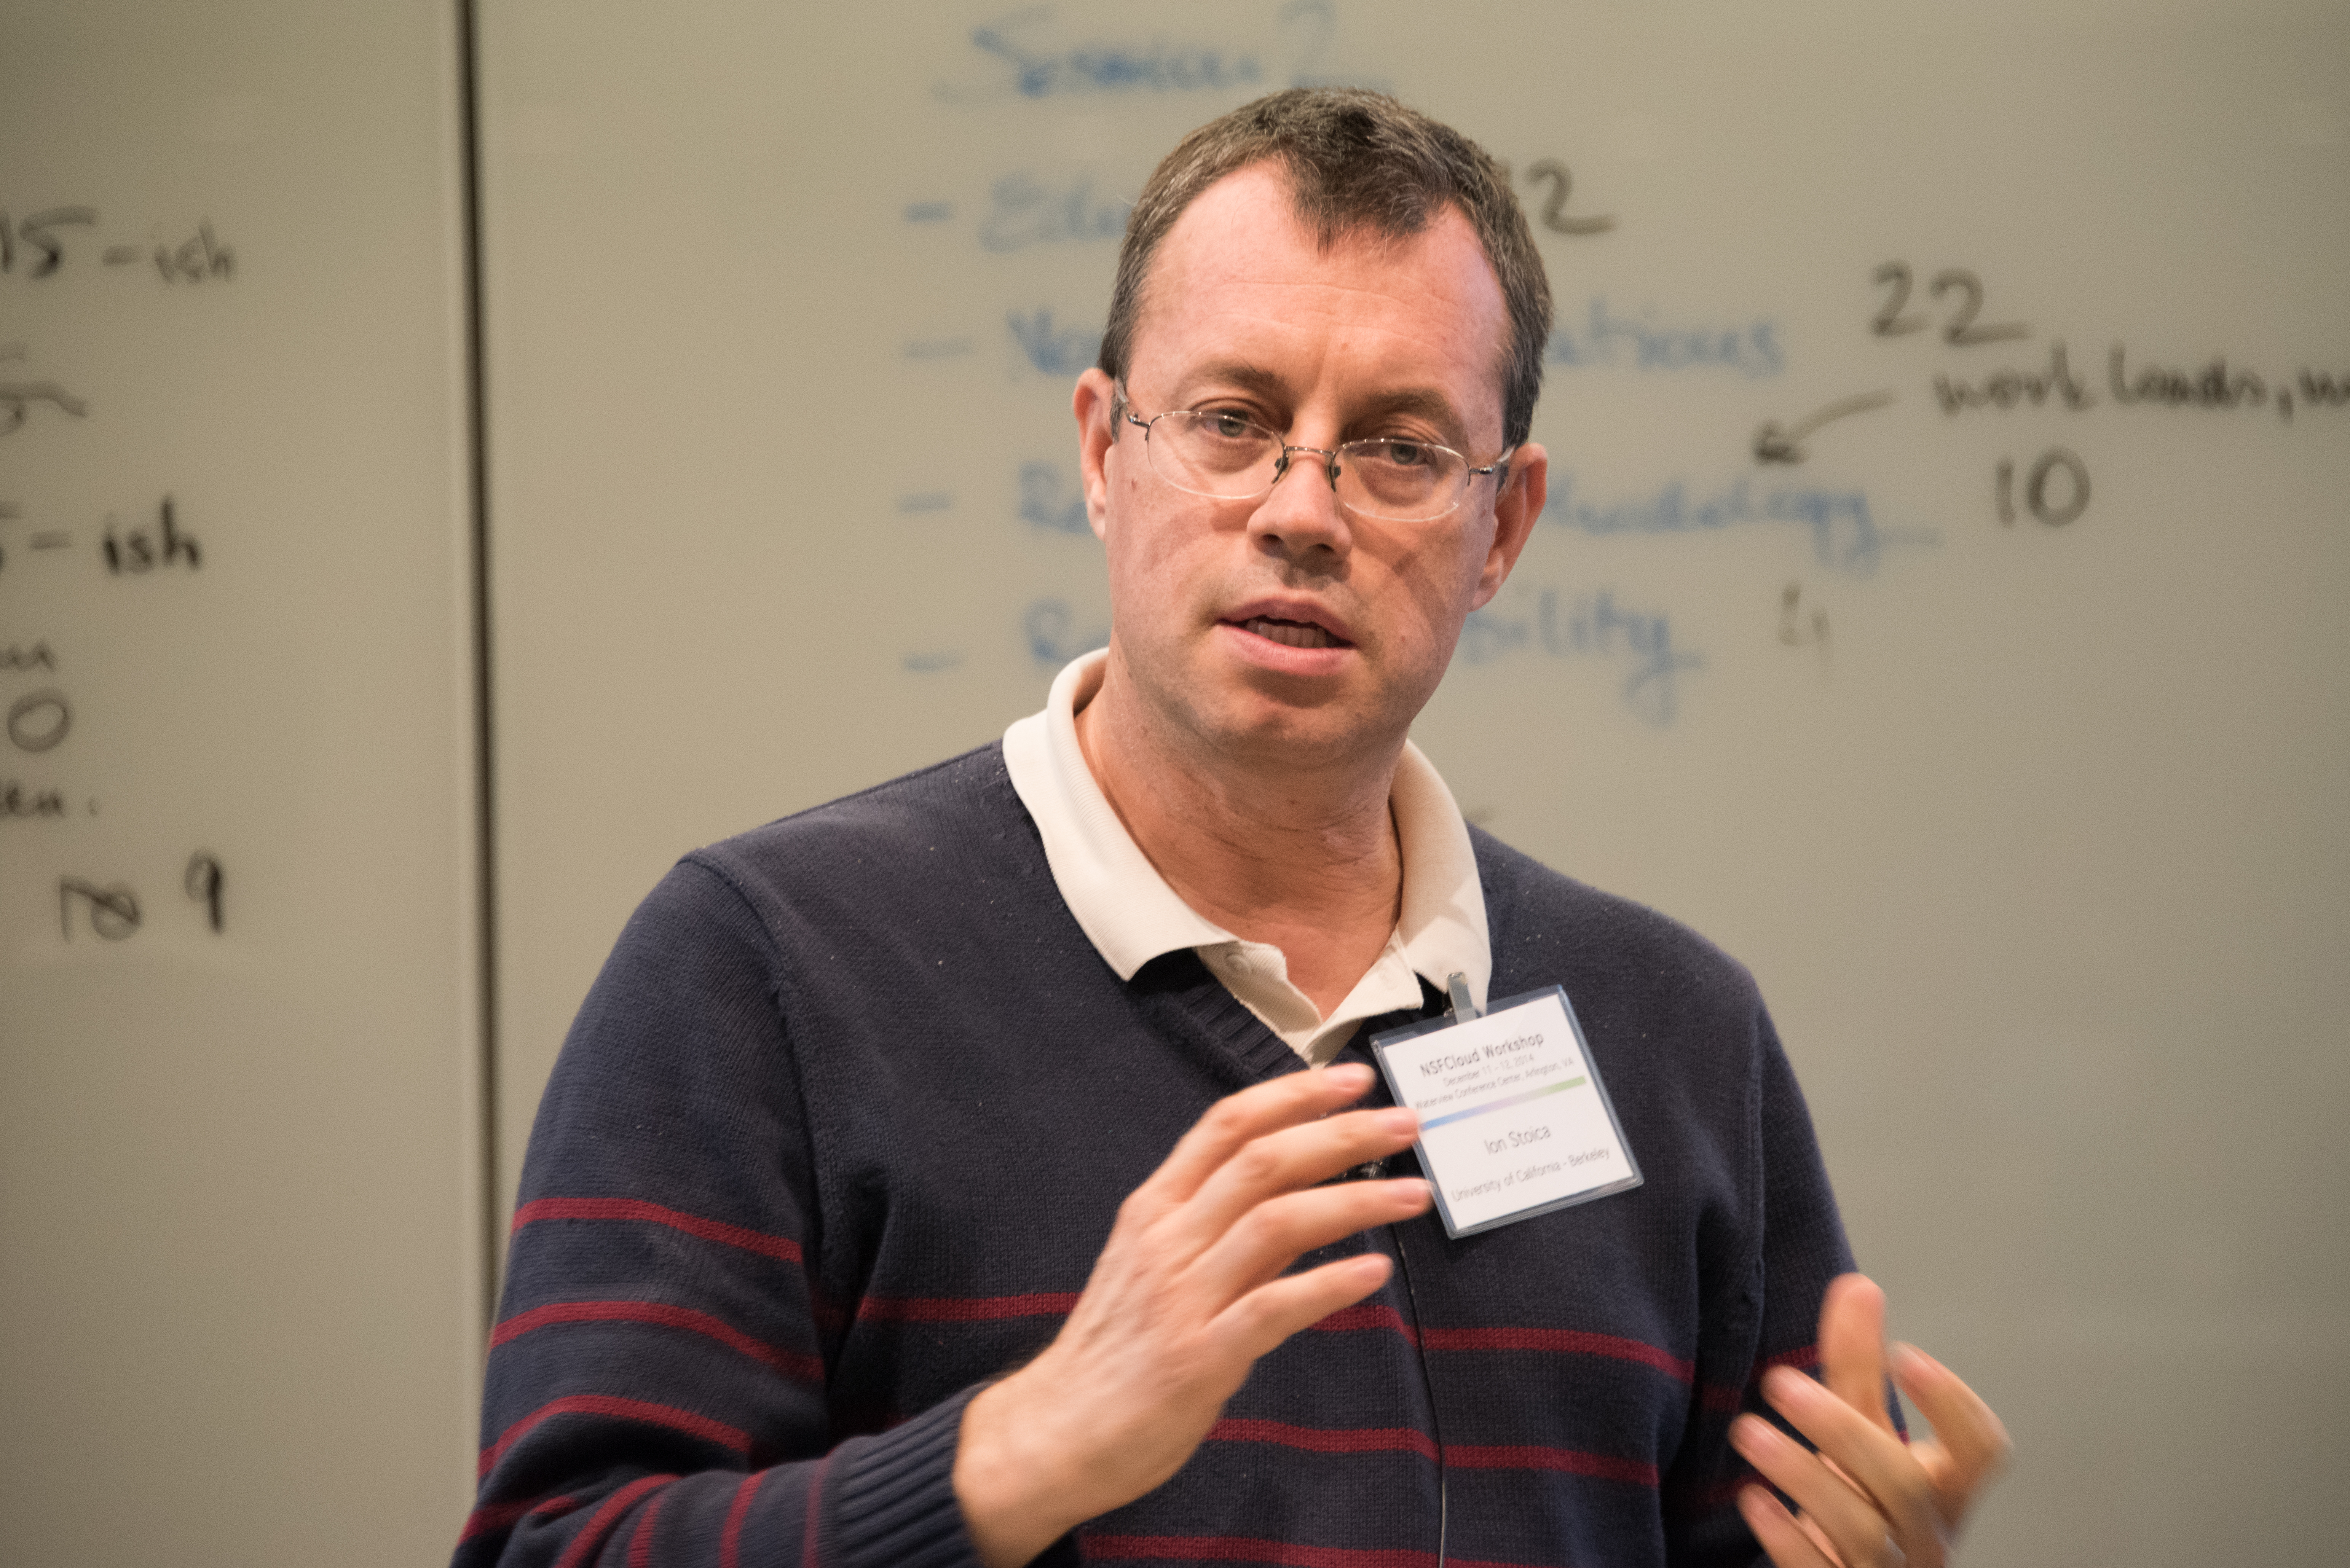 Ion Stoica speaking at a [[National Science Foundation]] workshop on cloud computing in 2014